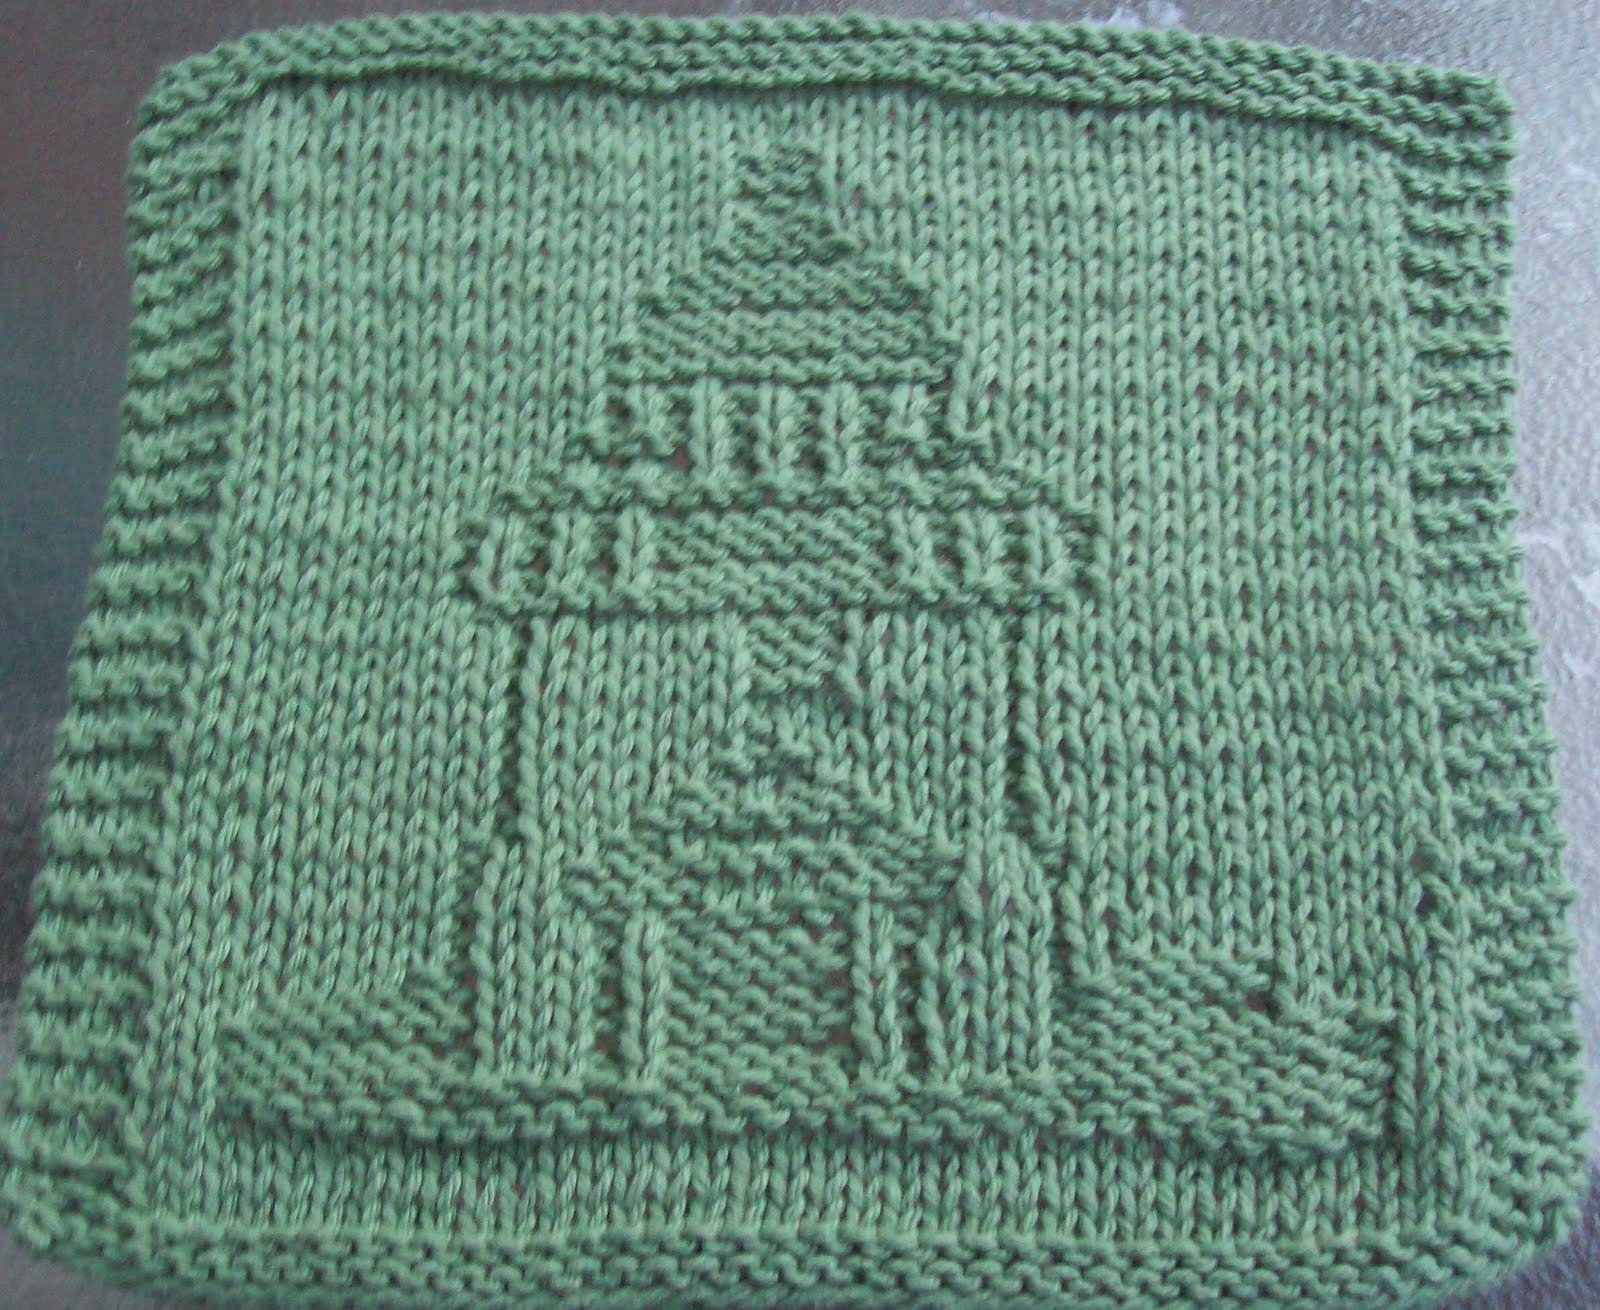 How To Knit Dishcloths Free Patterns : DigKnitty Designs: Lighthouse Too Knit Dishcloth Pattern